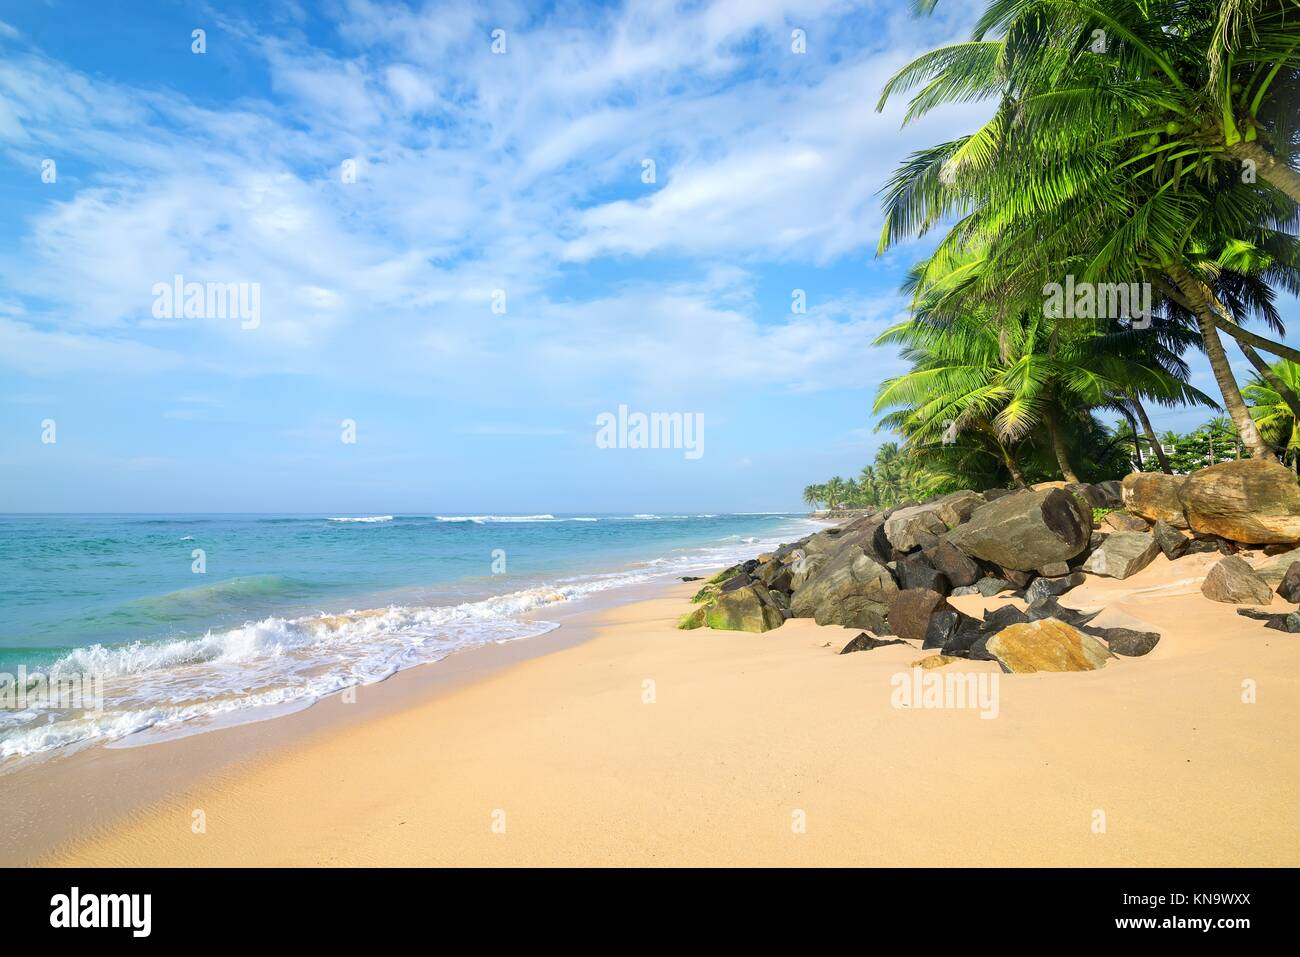 Stones and palm trees on a sandy beach of Gala in Sri Lanka. Stock Photo